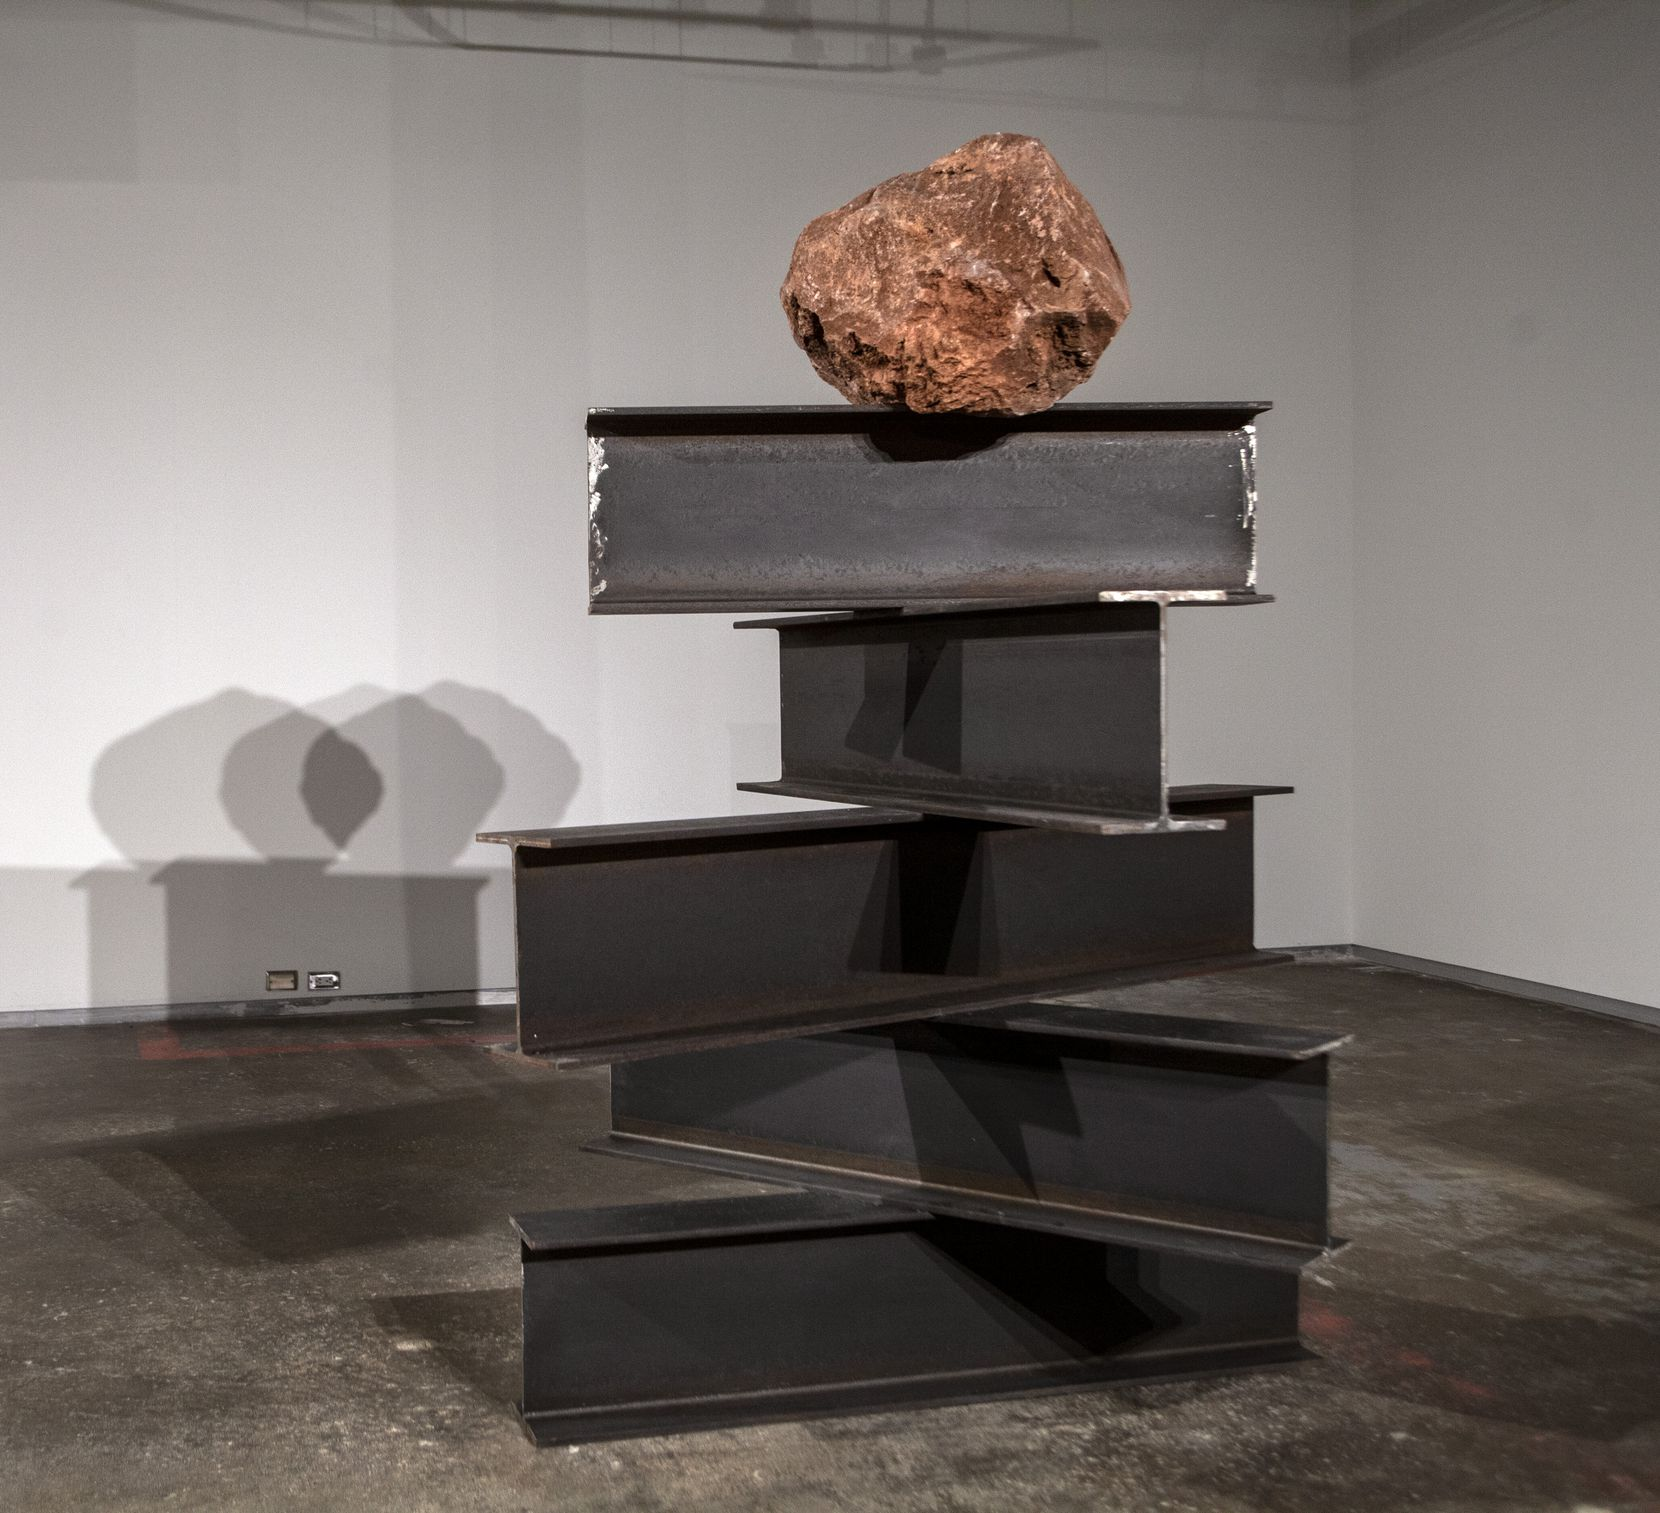 "The 2019 work ""Perpetuum Mobile"" features a volcanic rock perched atop metal beams."